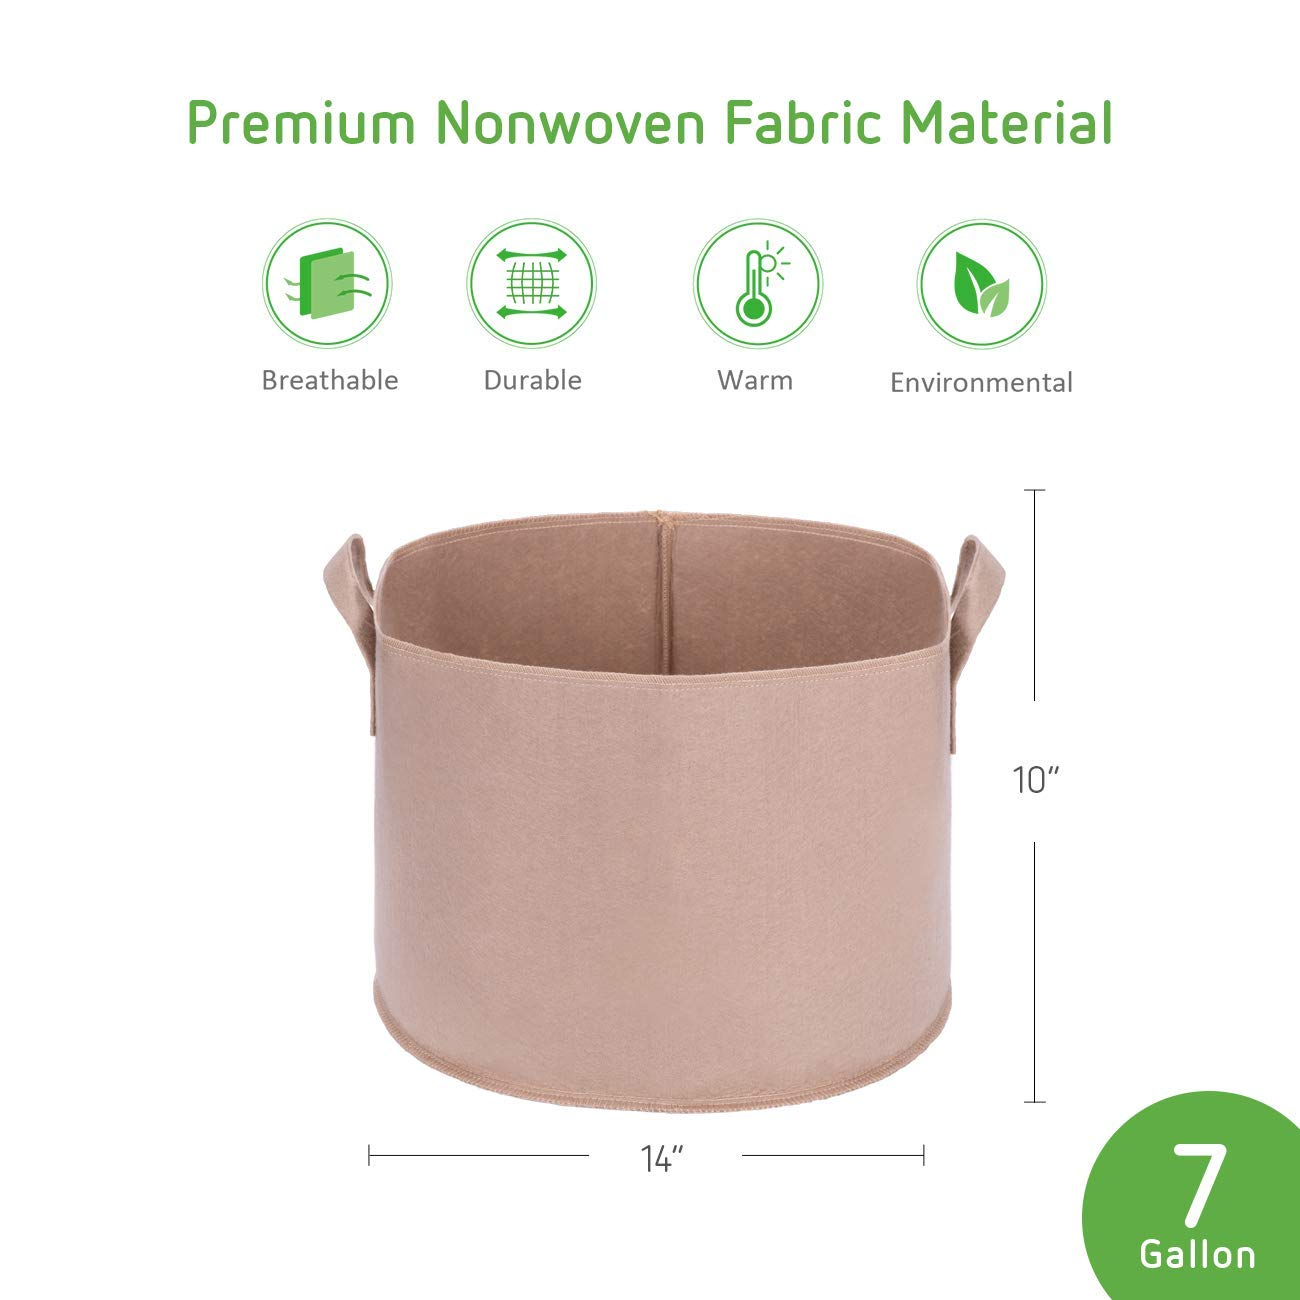 VIVOSUN 5-Pack 10 Gallons Heavy Duty Thickened Nonwoven Fabric Pots Grow Bags with Strap Handles Tan